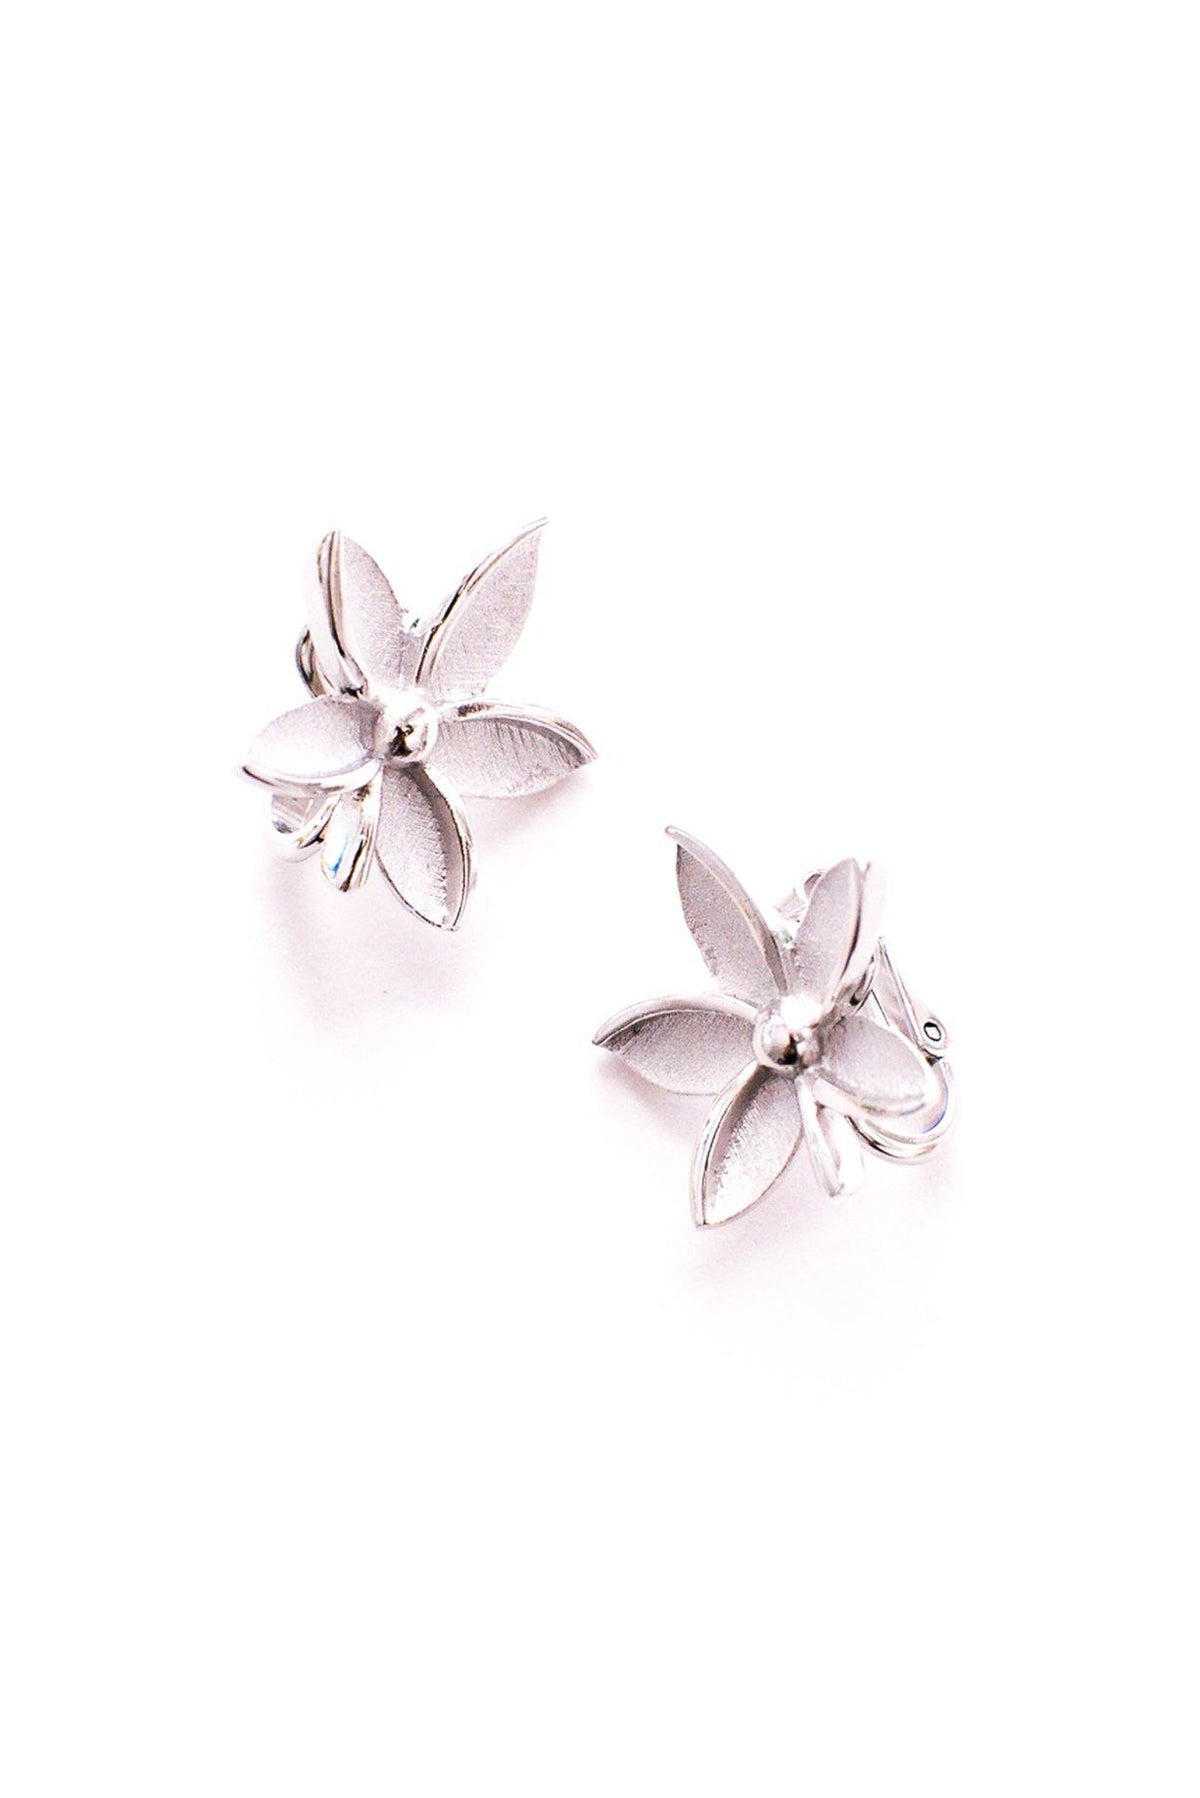 Vintage Trifari Silver Floral Clip-On Earrings from Sweet & Spark